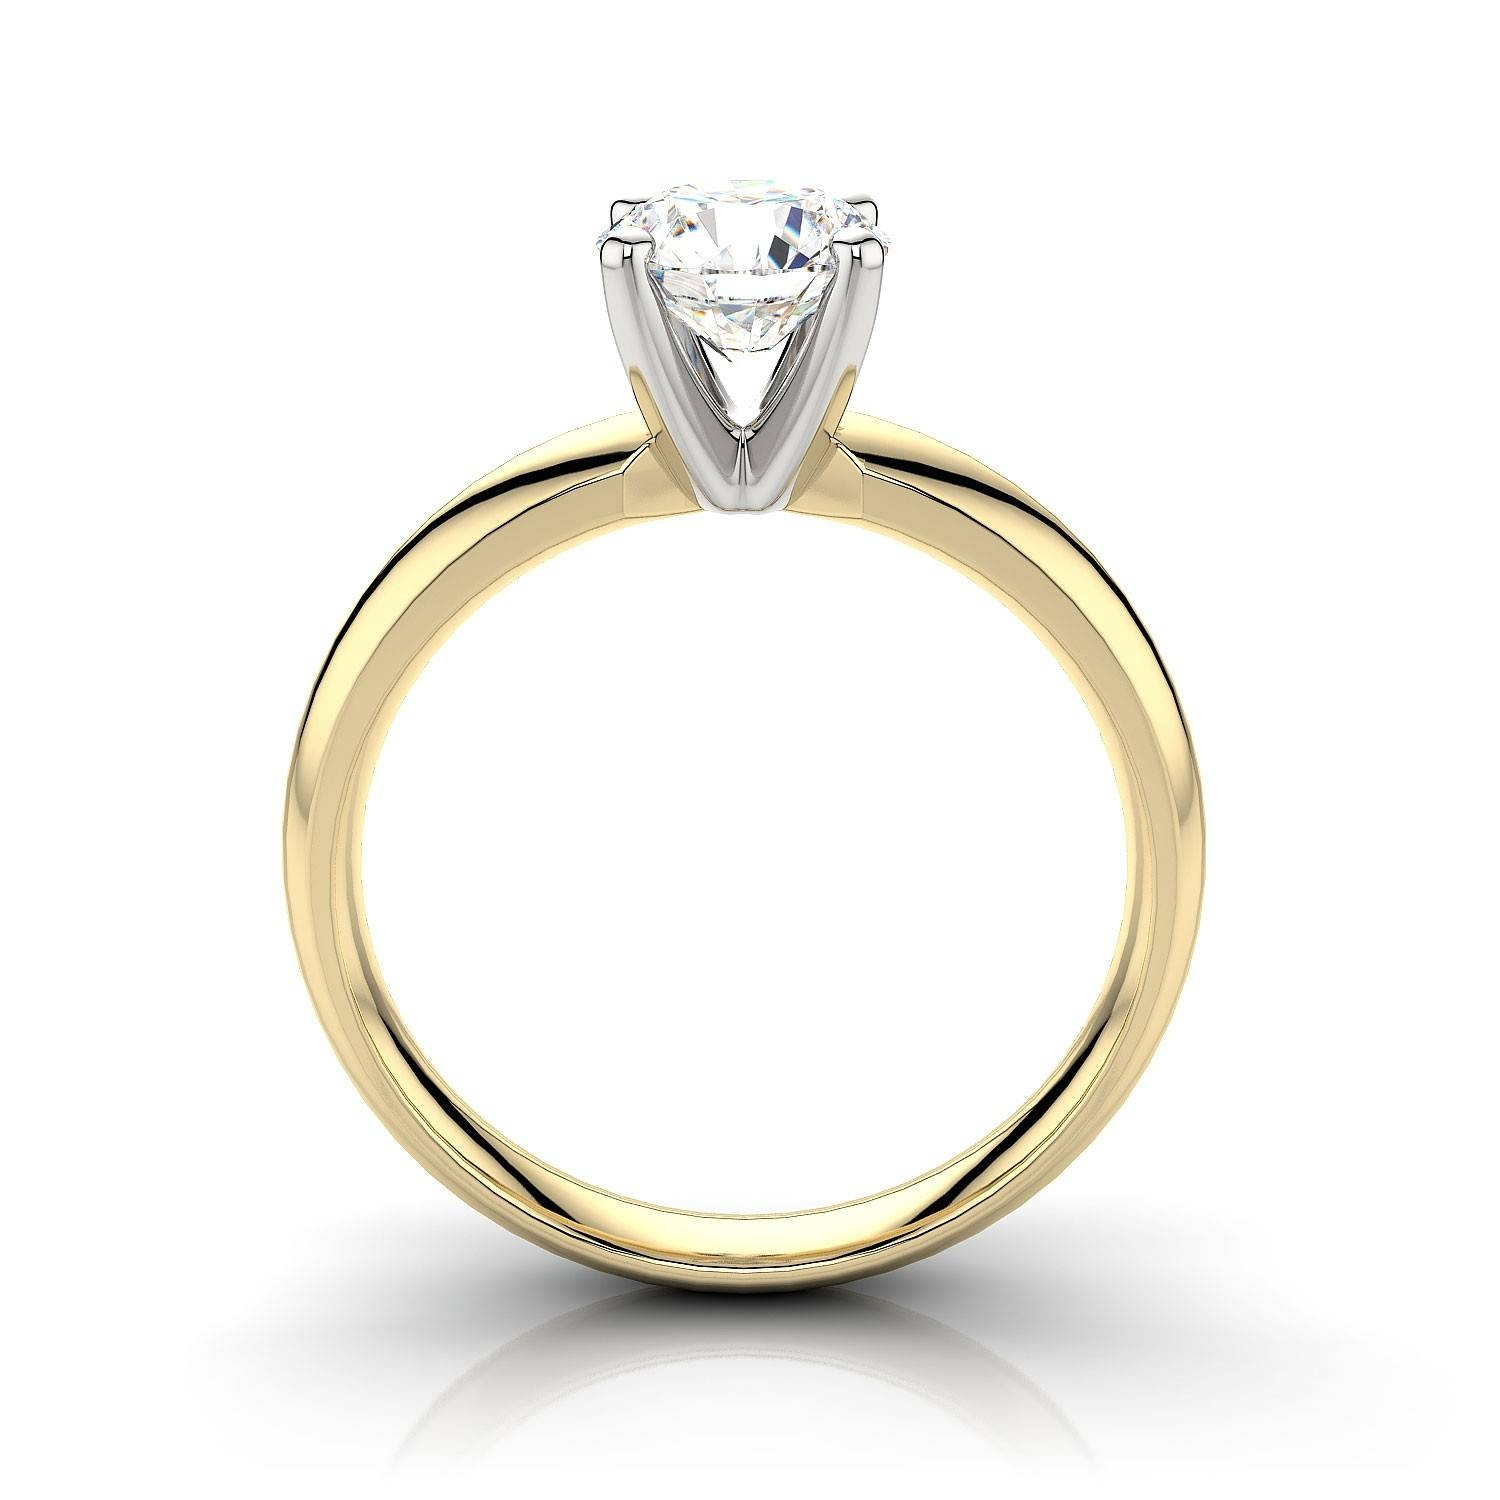 Classic Round Diamond Solitaire Engagement Ring In 14K Yellow Gold With Traditional Gold Engagement Rings (View 6 of 15)